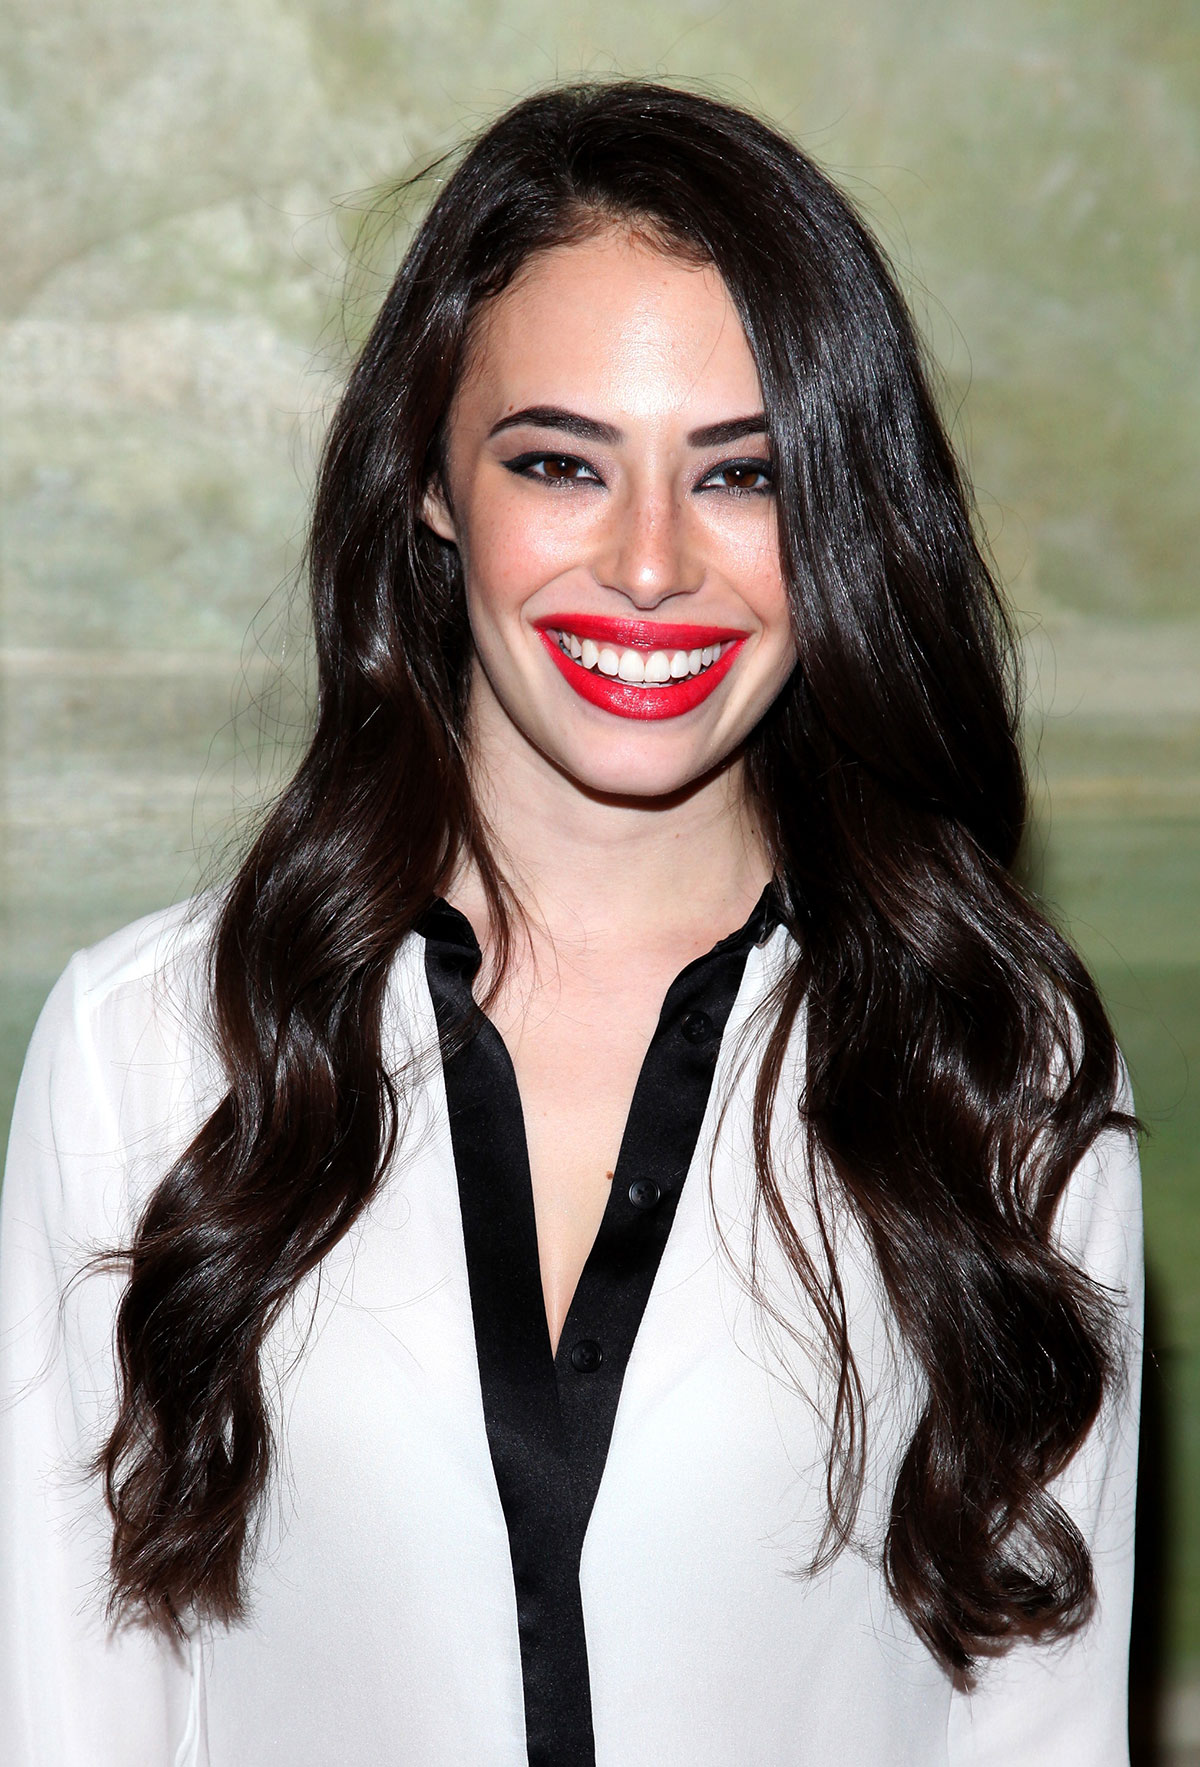 Chloe Bridges attends the Alice and Olivia by Stacey Bendet Spring 2015